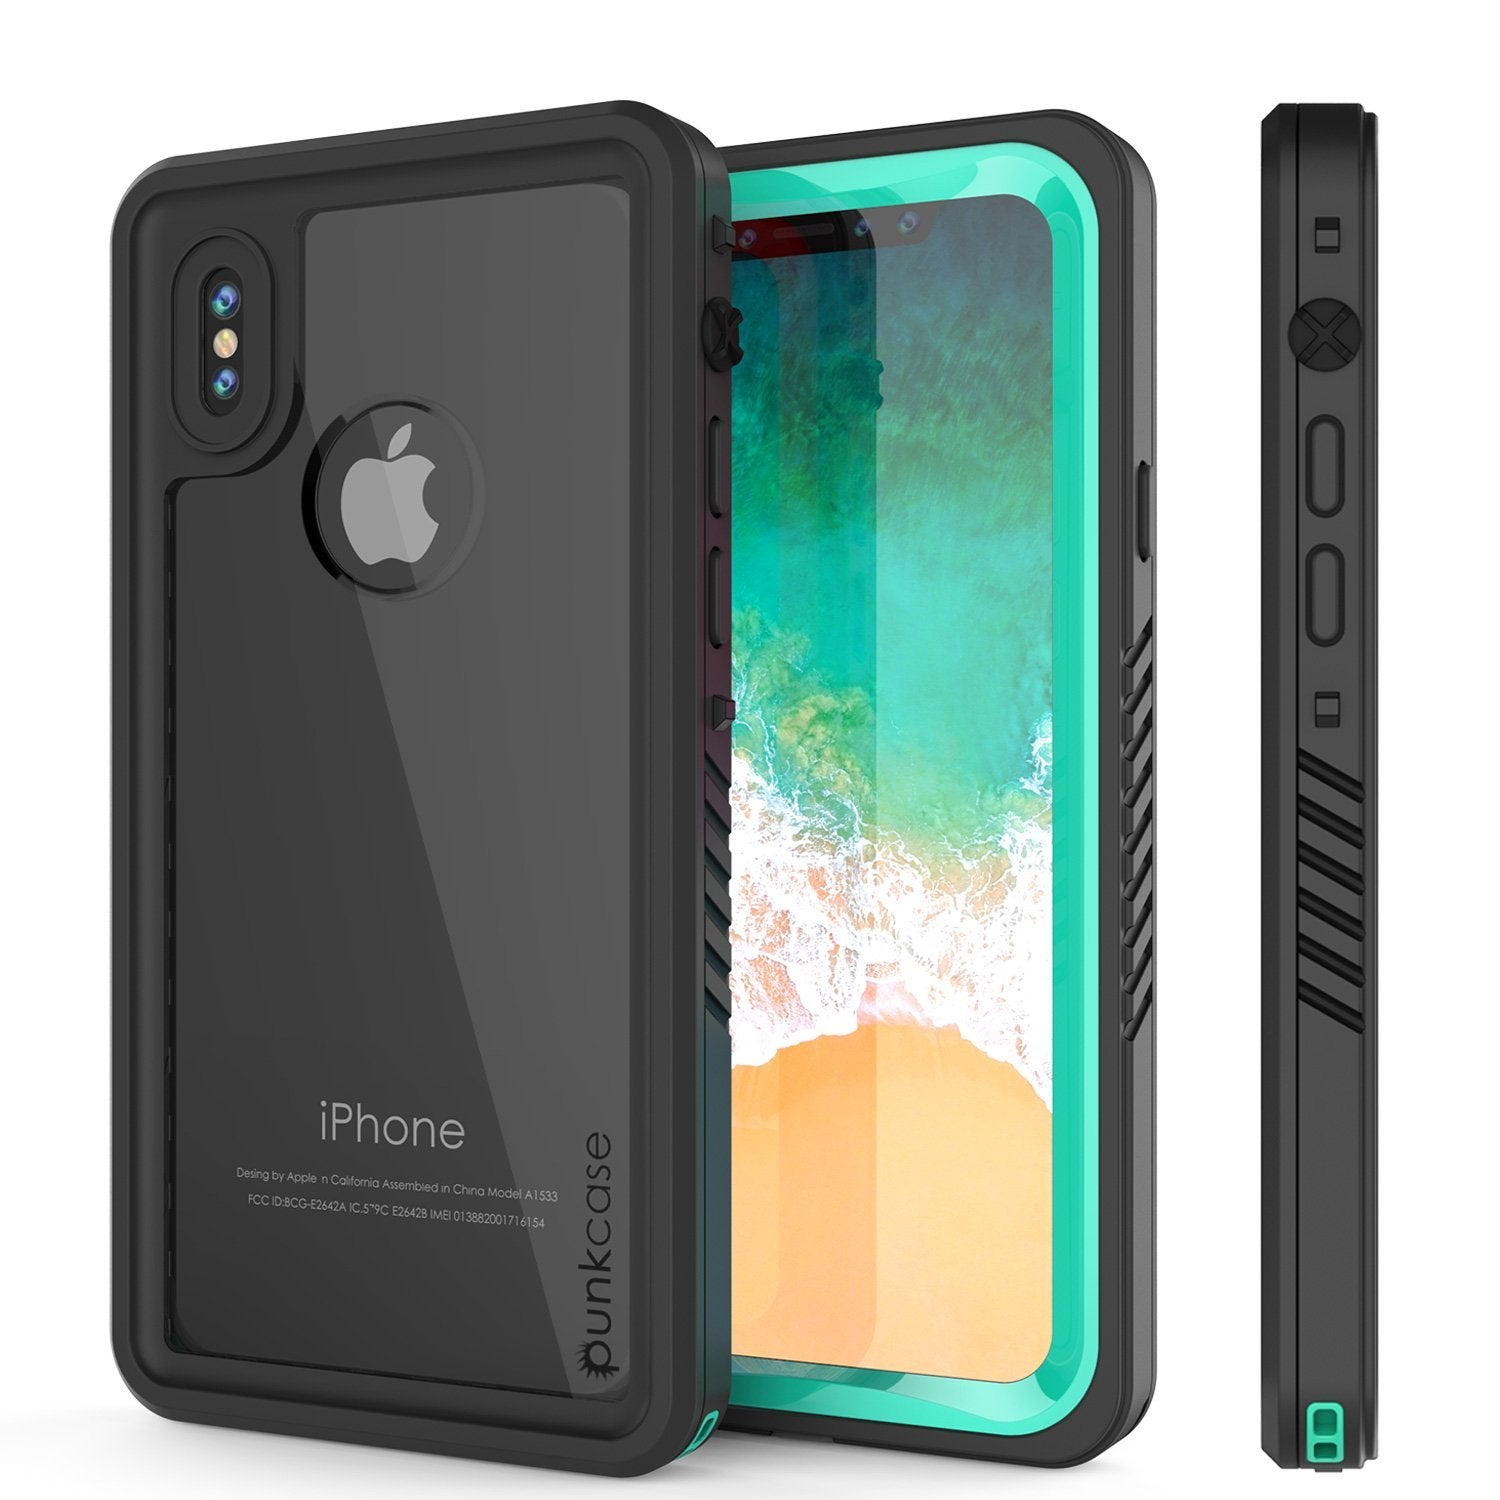 iPhone XS Max Waterproof Case, Punkcase [Extreme Series] Armor Cover W/ Built In Screen Protector [Teal]